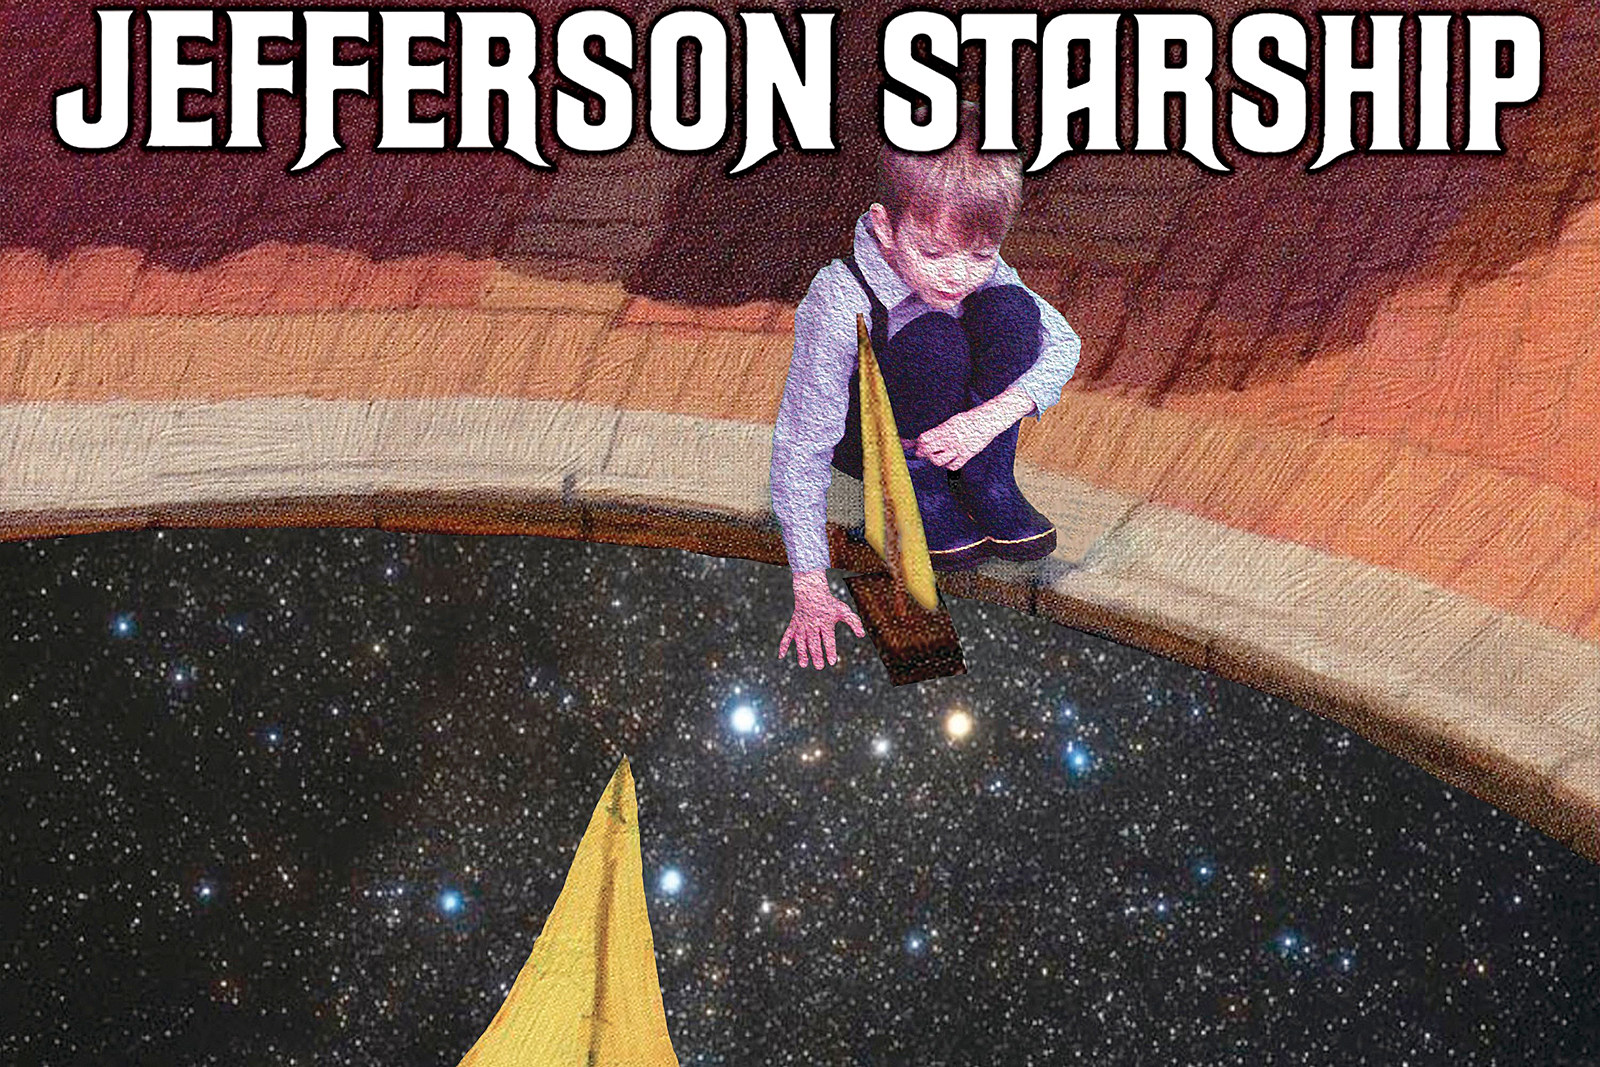 Jefferson Starship Preview New EP With Single 'It's About Time'